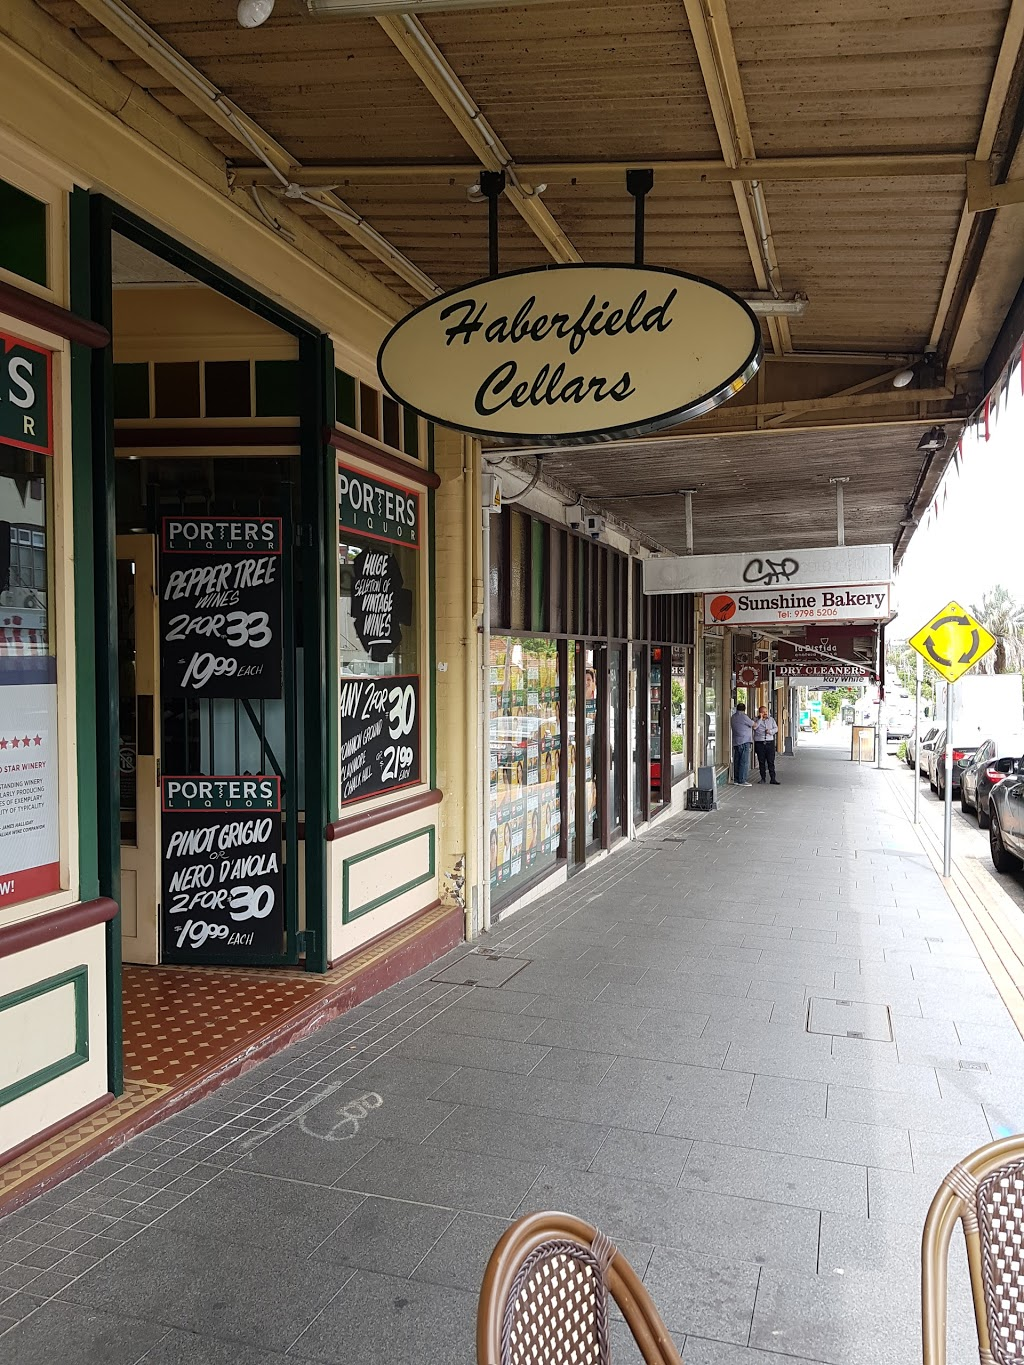 Haberfield Cellars | store | 117 Ramsay St, Haberfield NSW 2045, Australia | 0297984128 OR +61 2 9798 4128